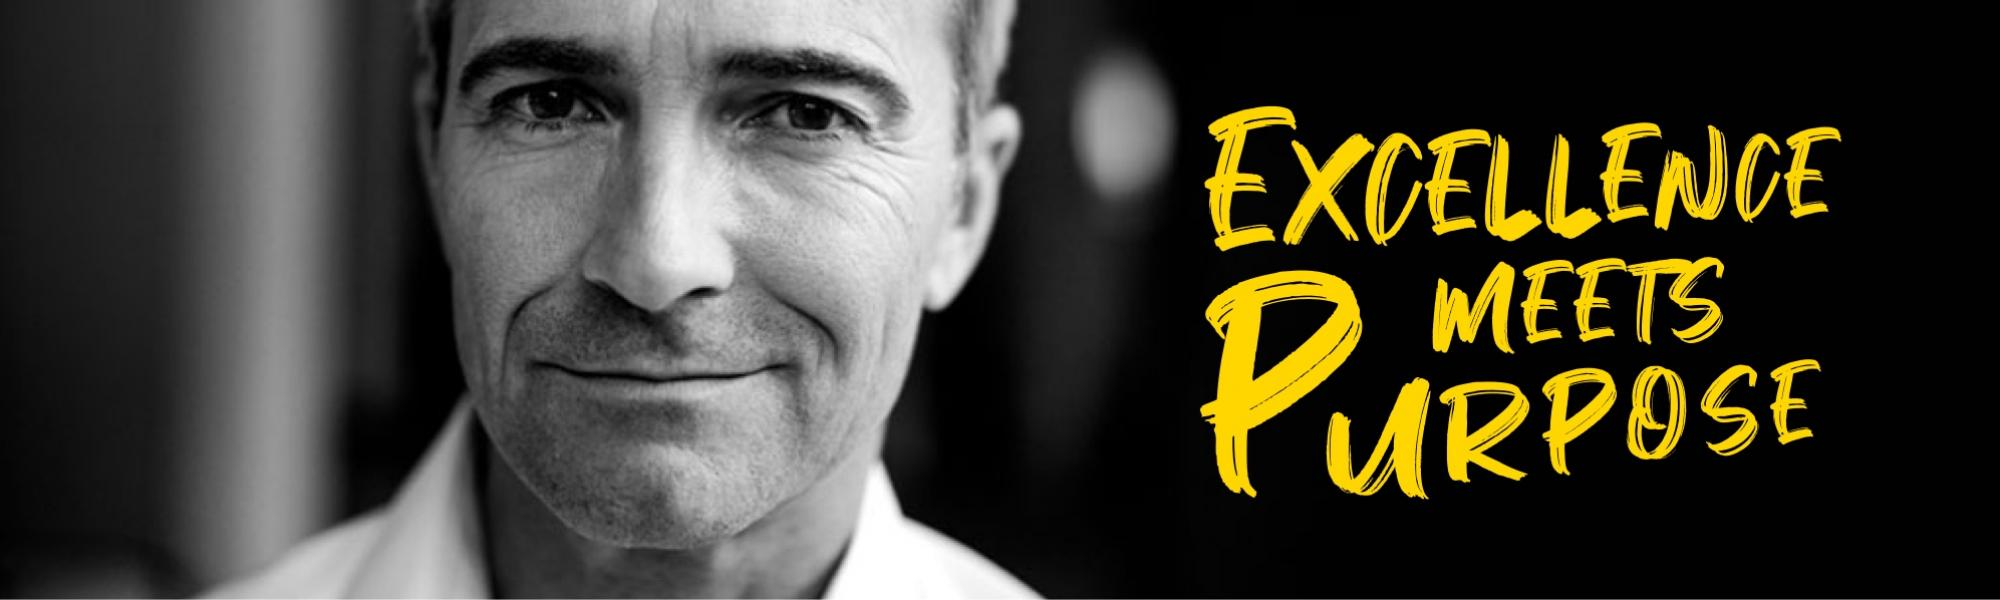 Excellence meets purpose